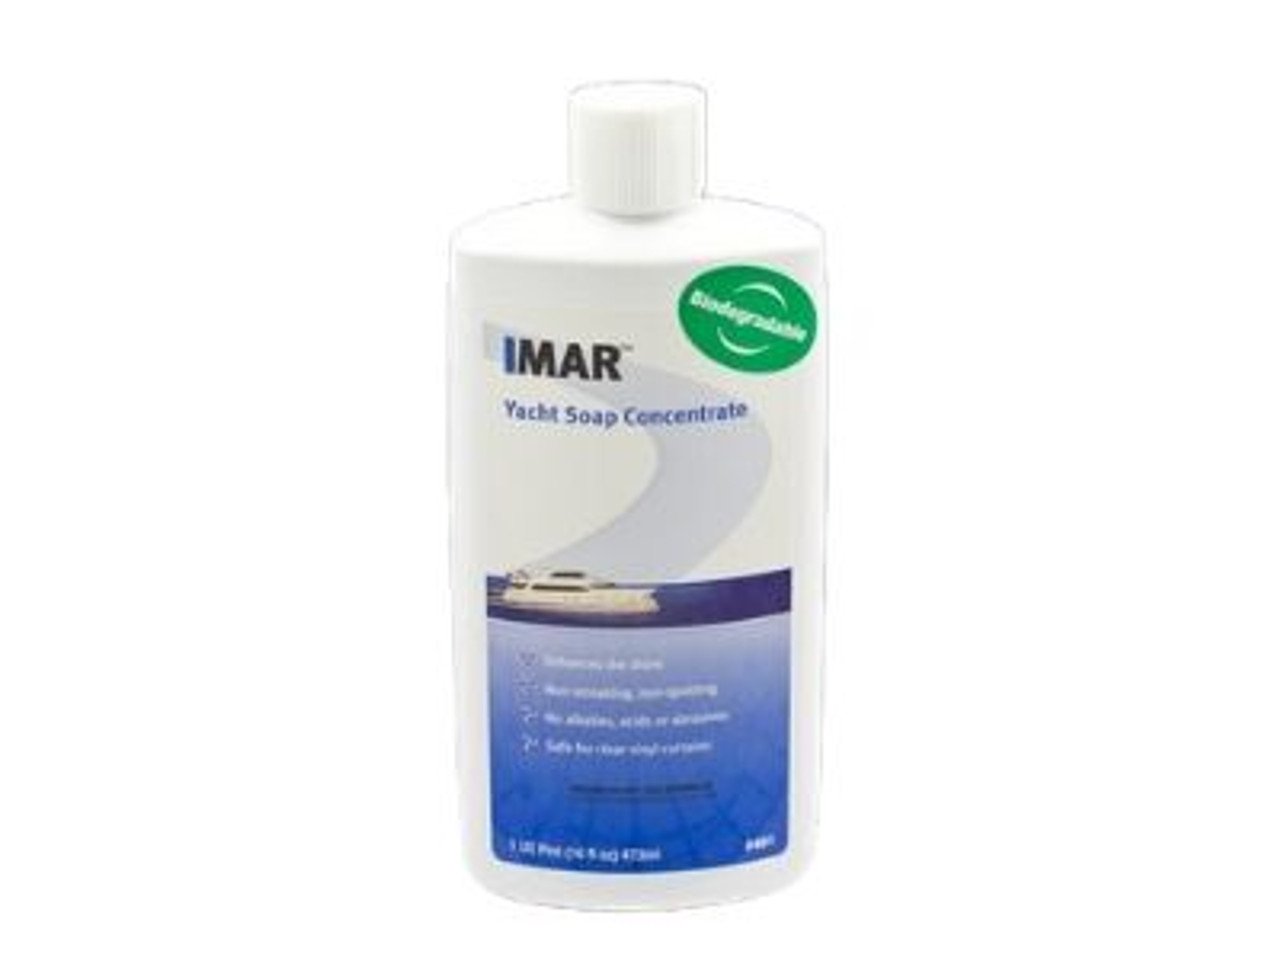 IMAR Yacht Soap Concentrate #401